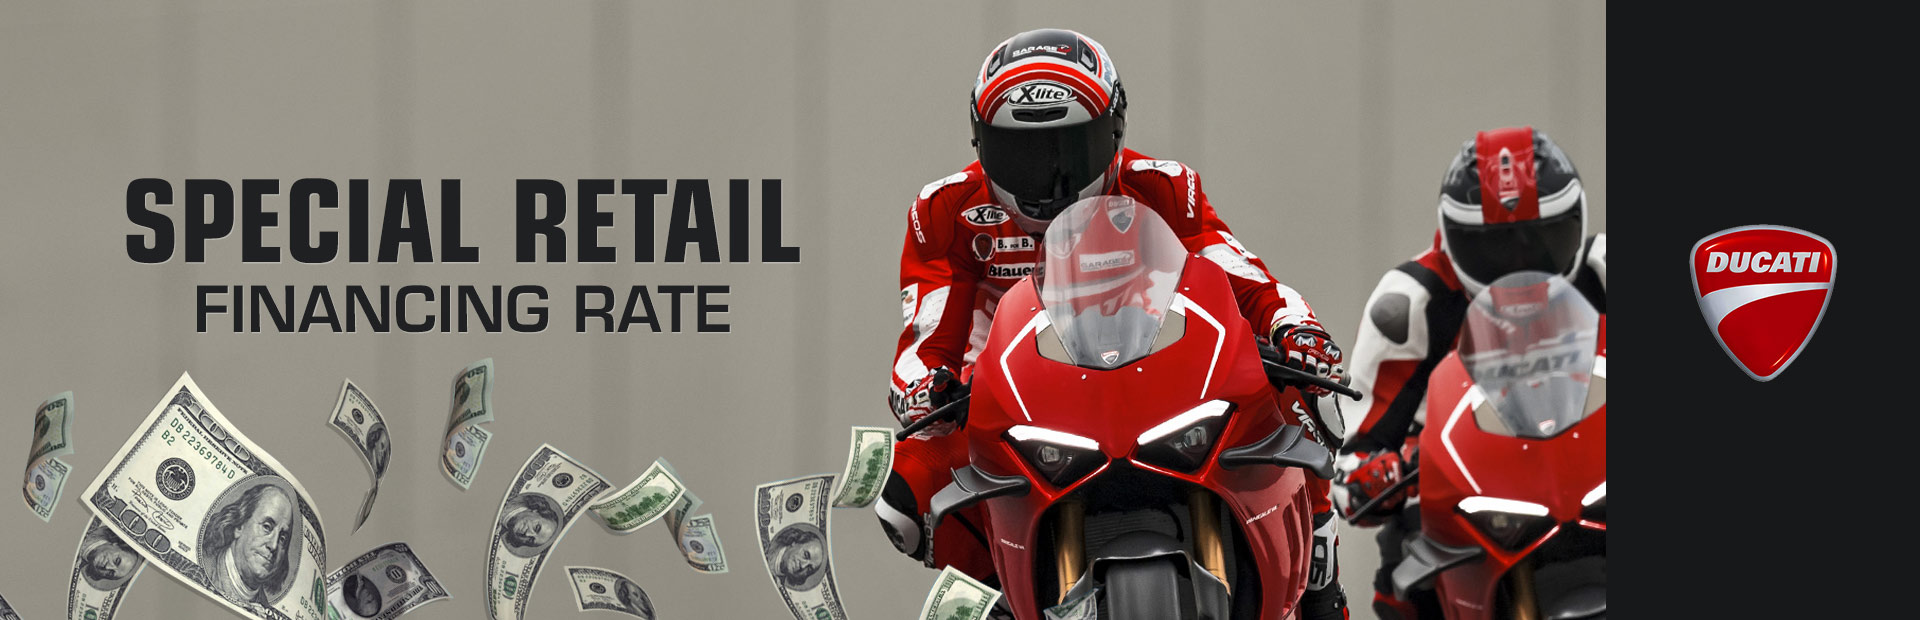 Ducati: Special Retail Financing Rate